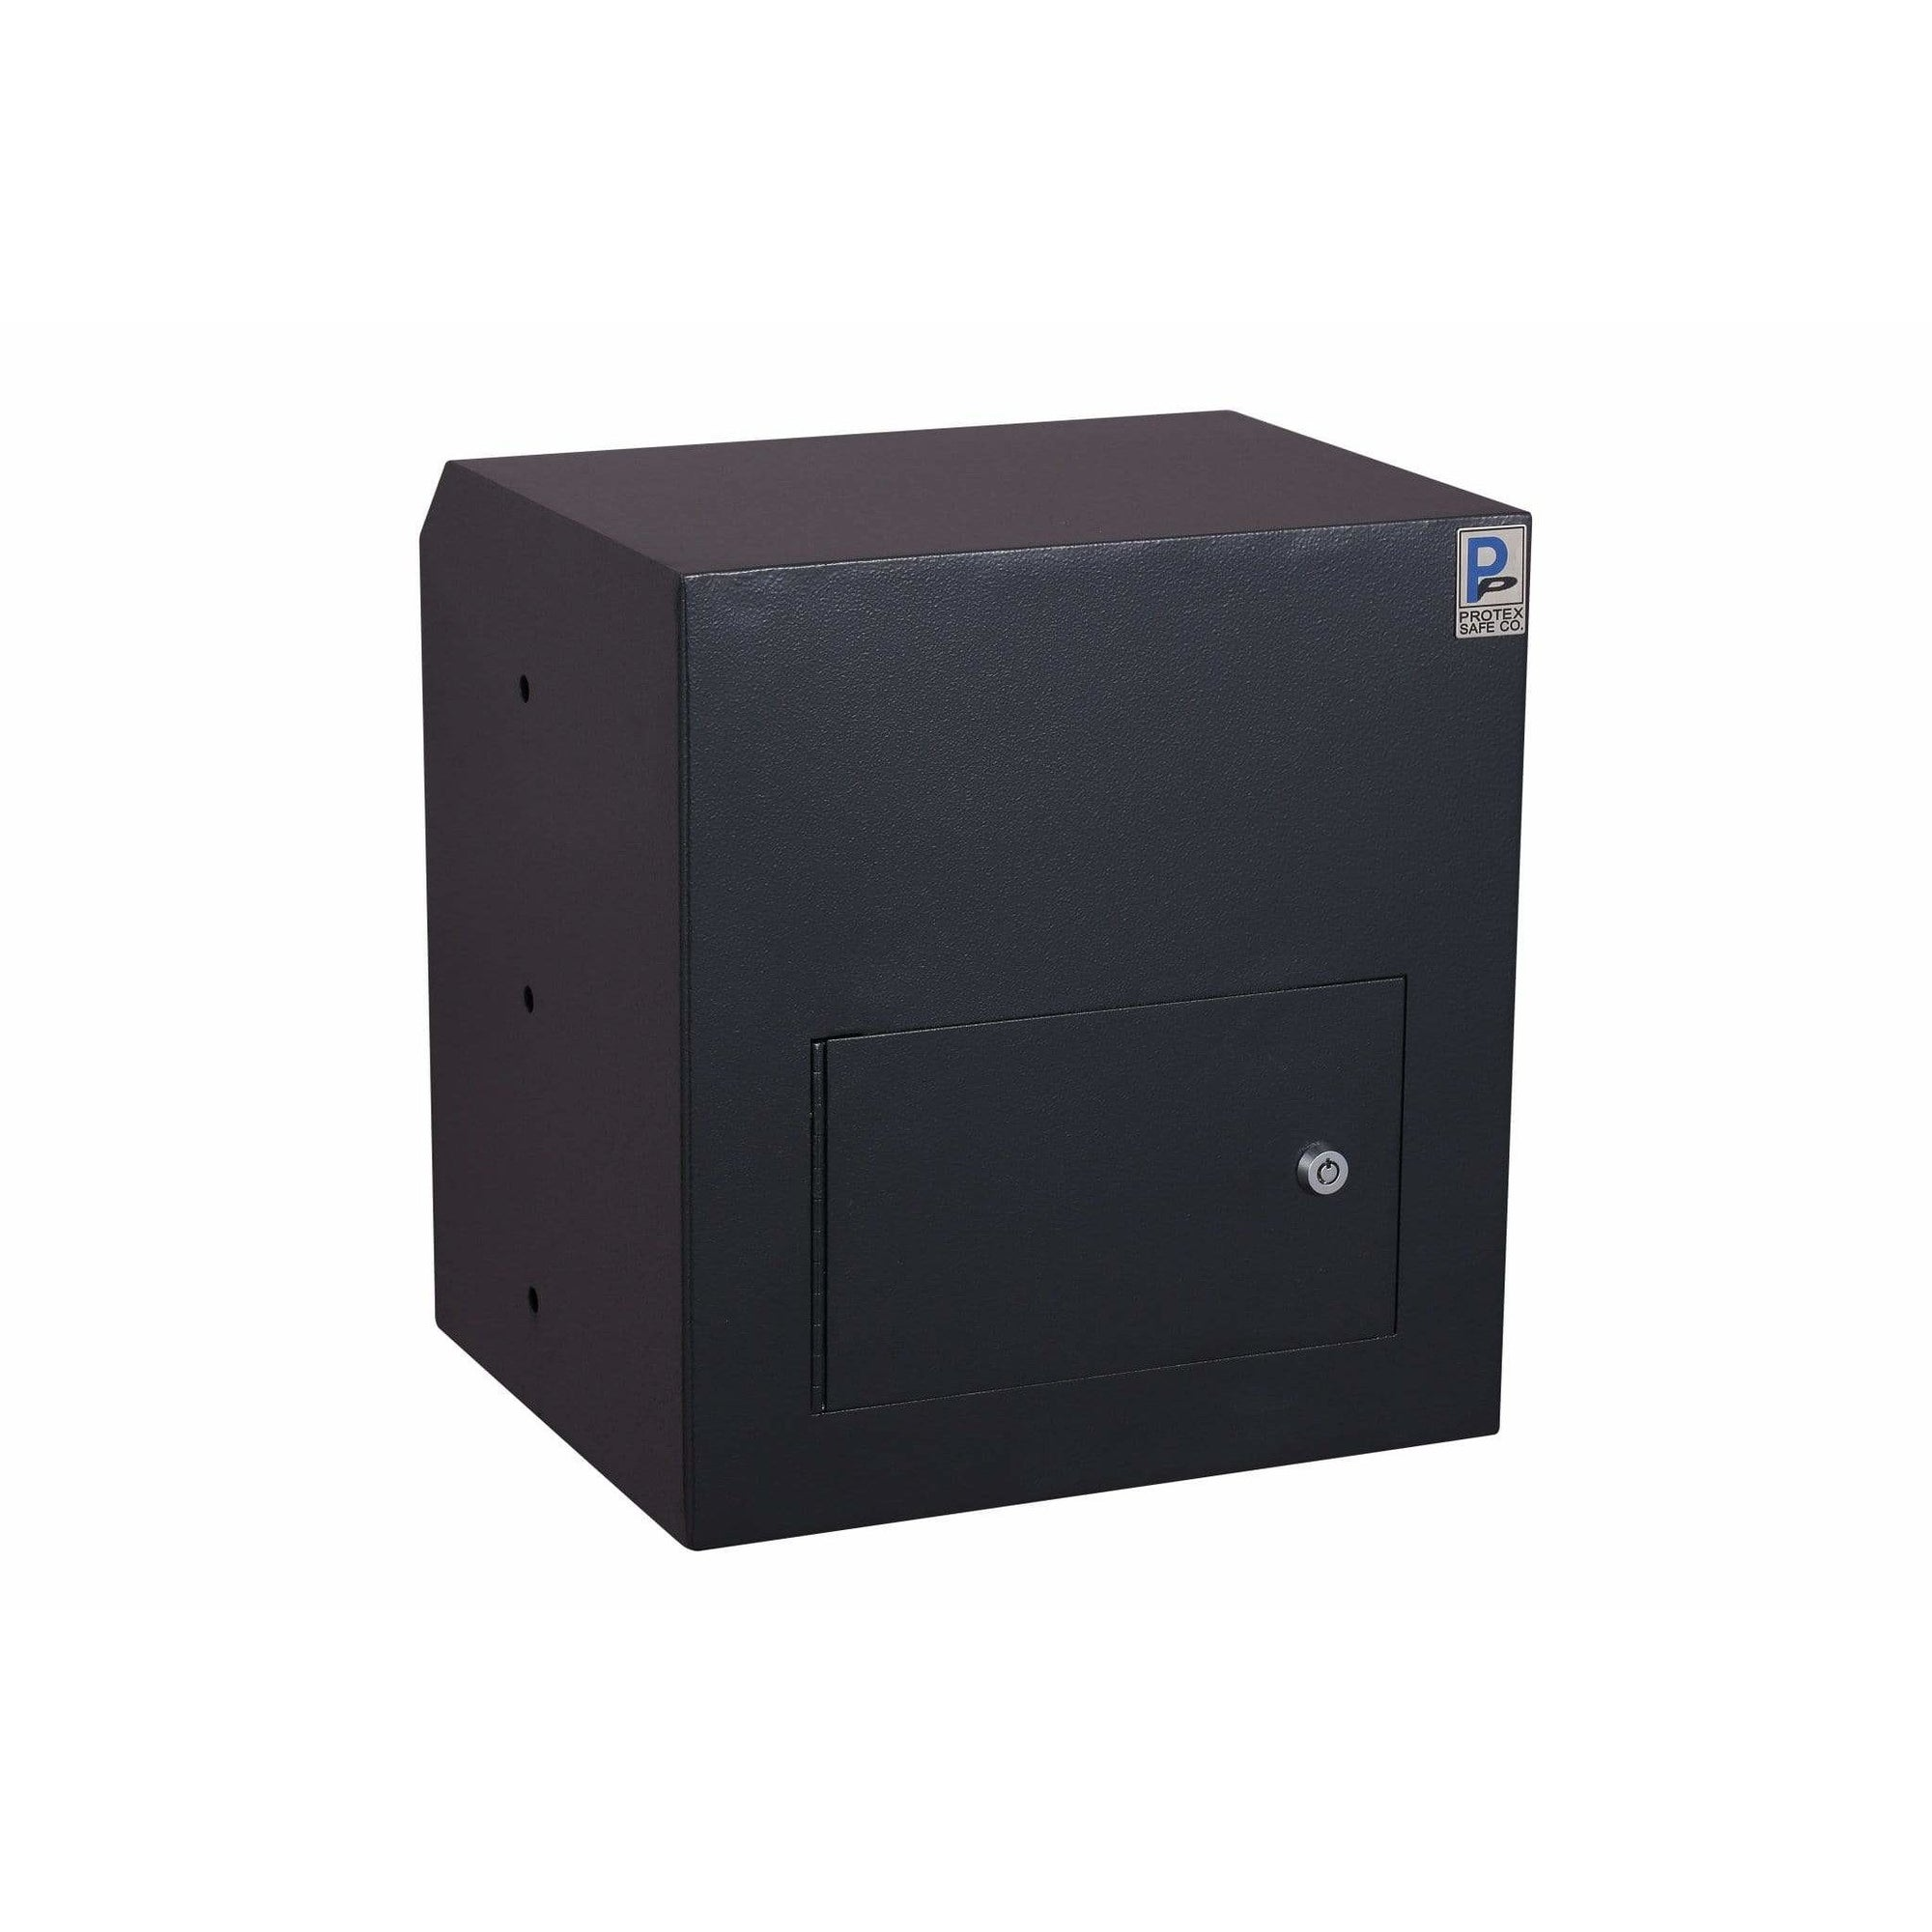 Protex Safes Drop Safe Protex WDD-180-Black Drop Safe Box - B-Rated Drop Safe WDD-180-Black